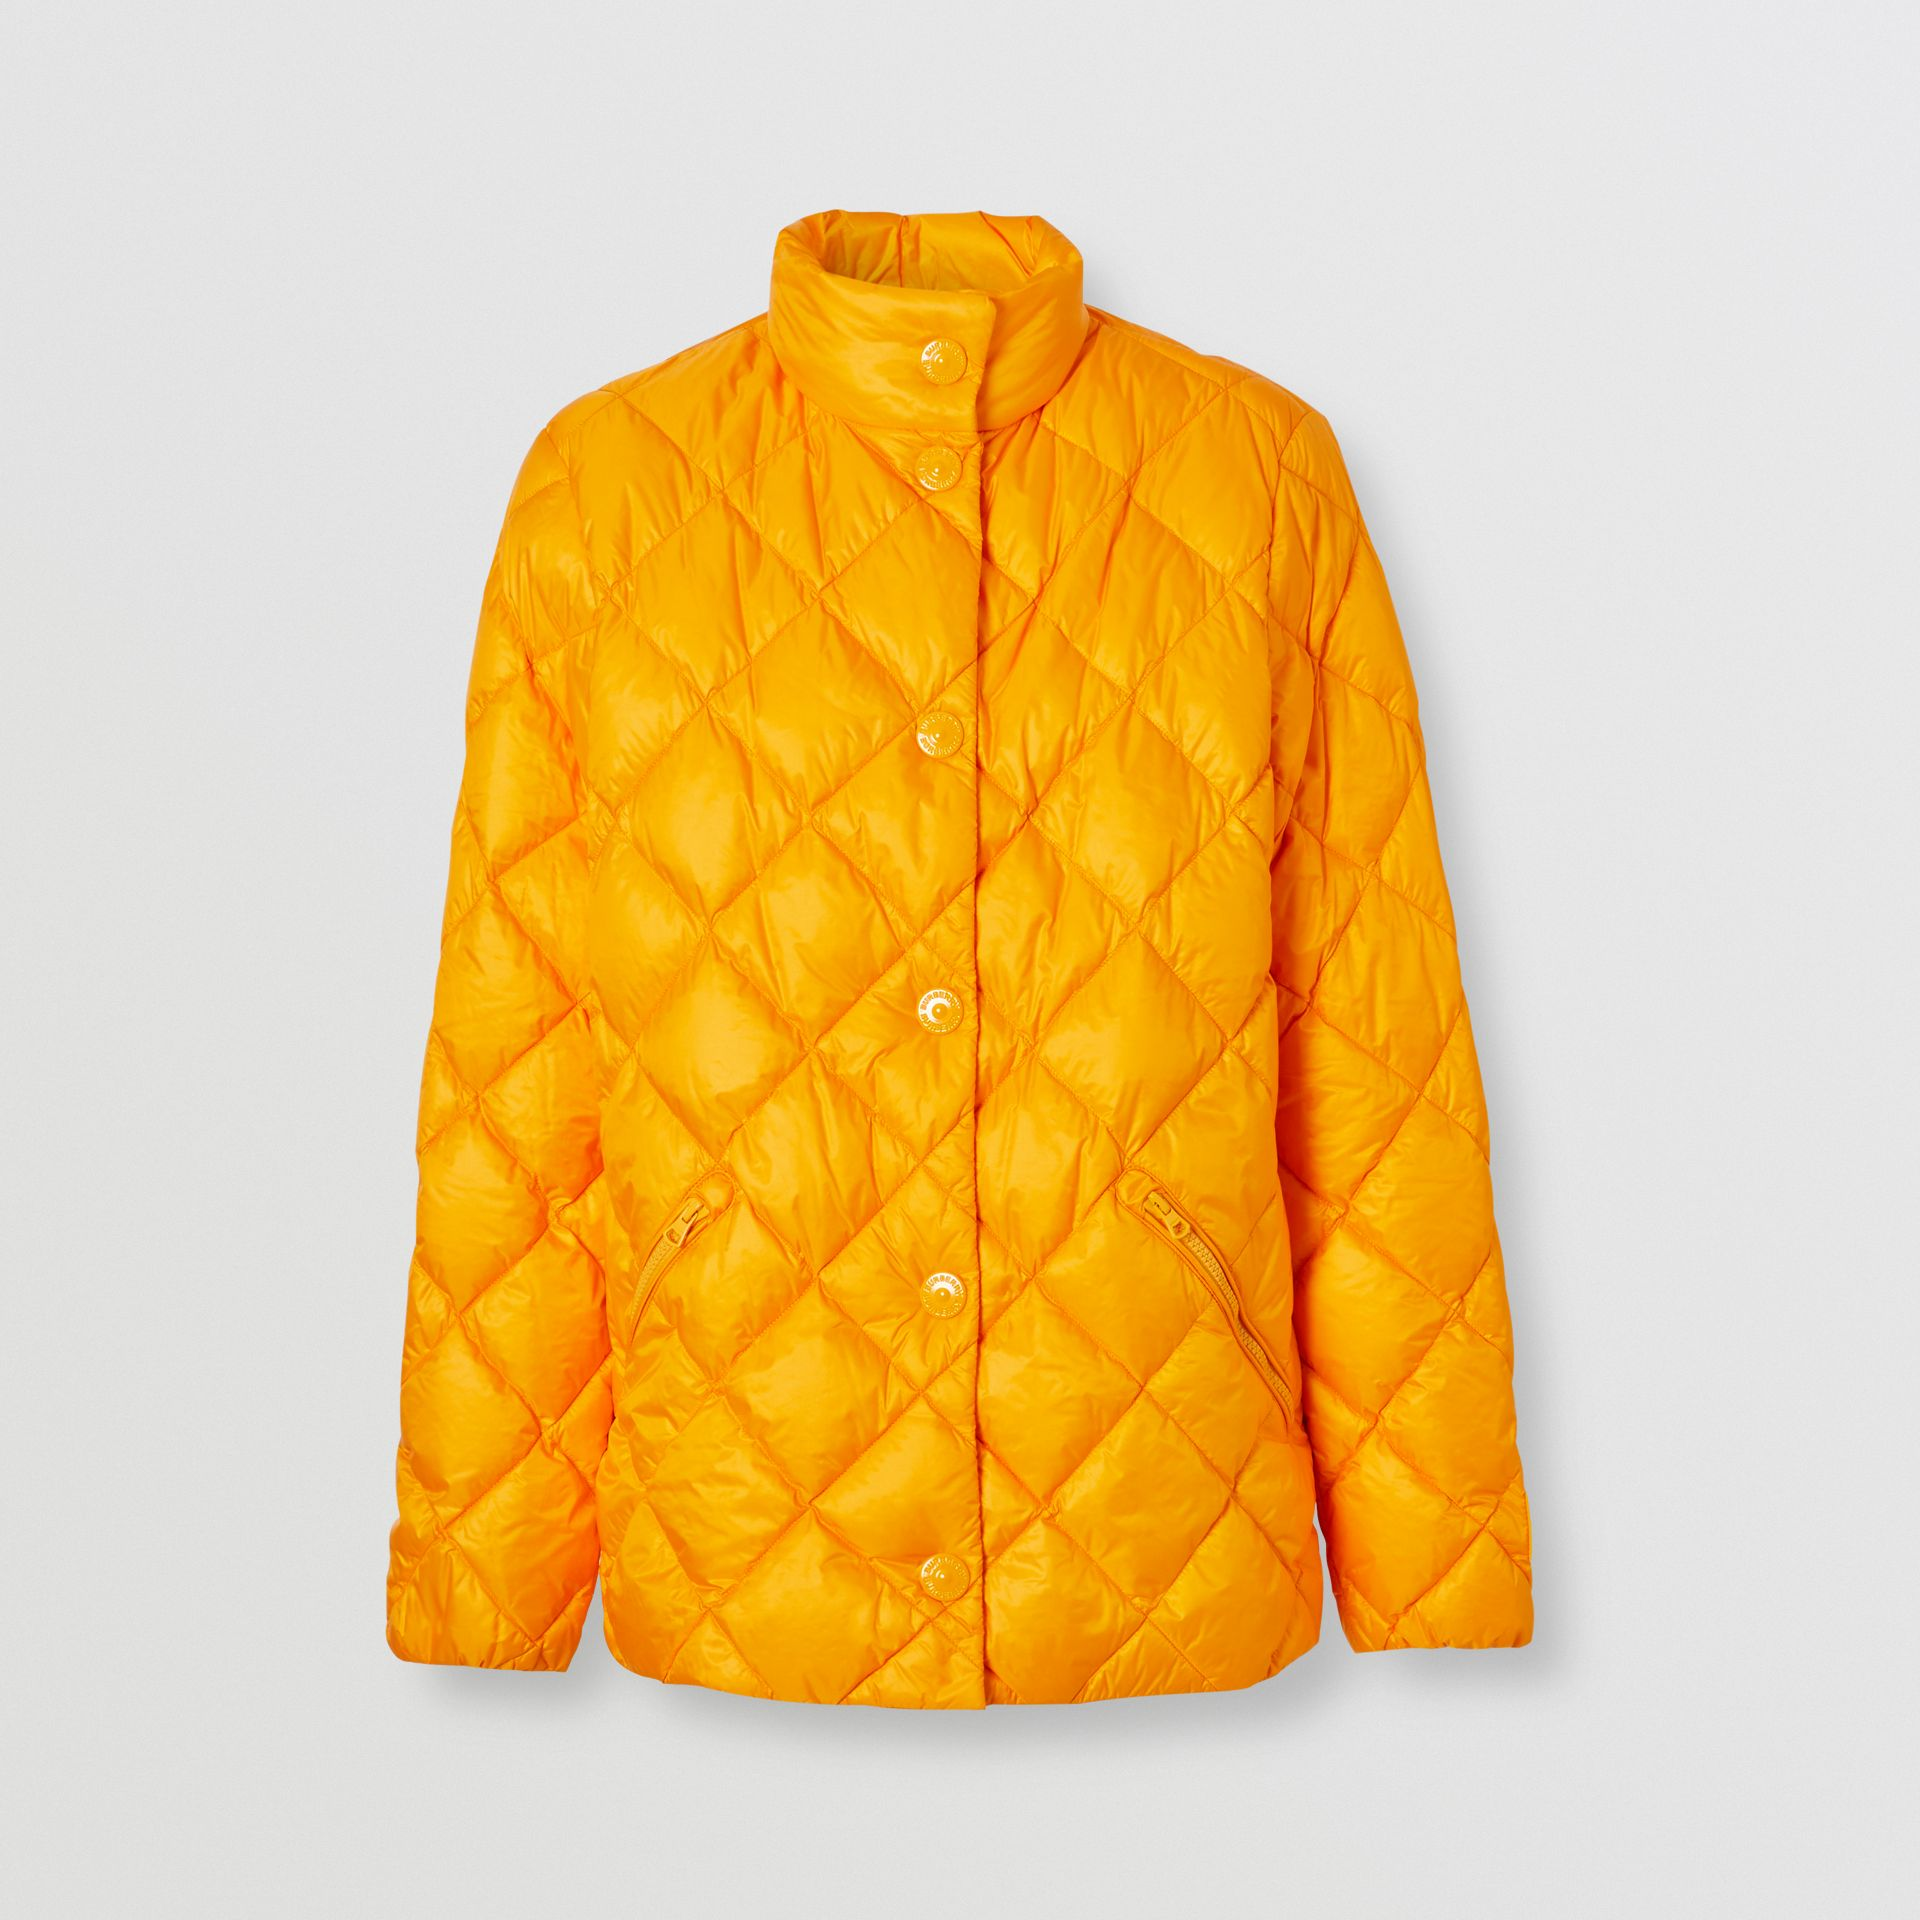 Diamond Quilted Down-filled Jacket in Citrus Orange - Women | Burberry - gallery image 3